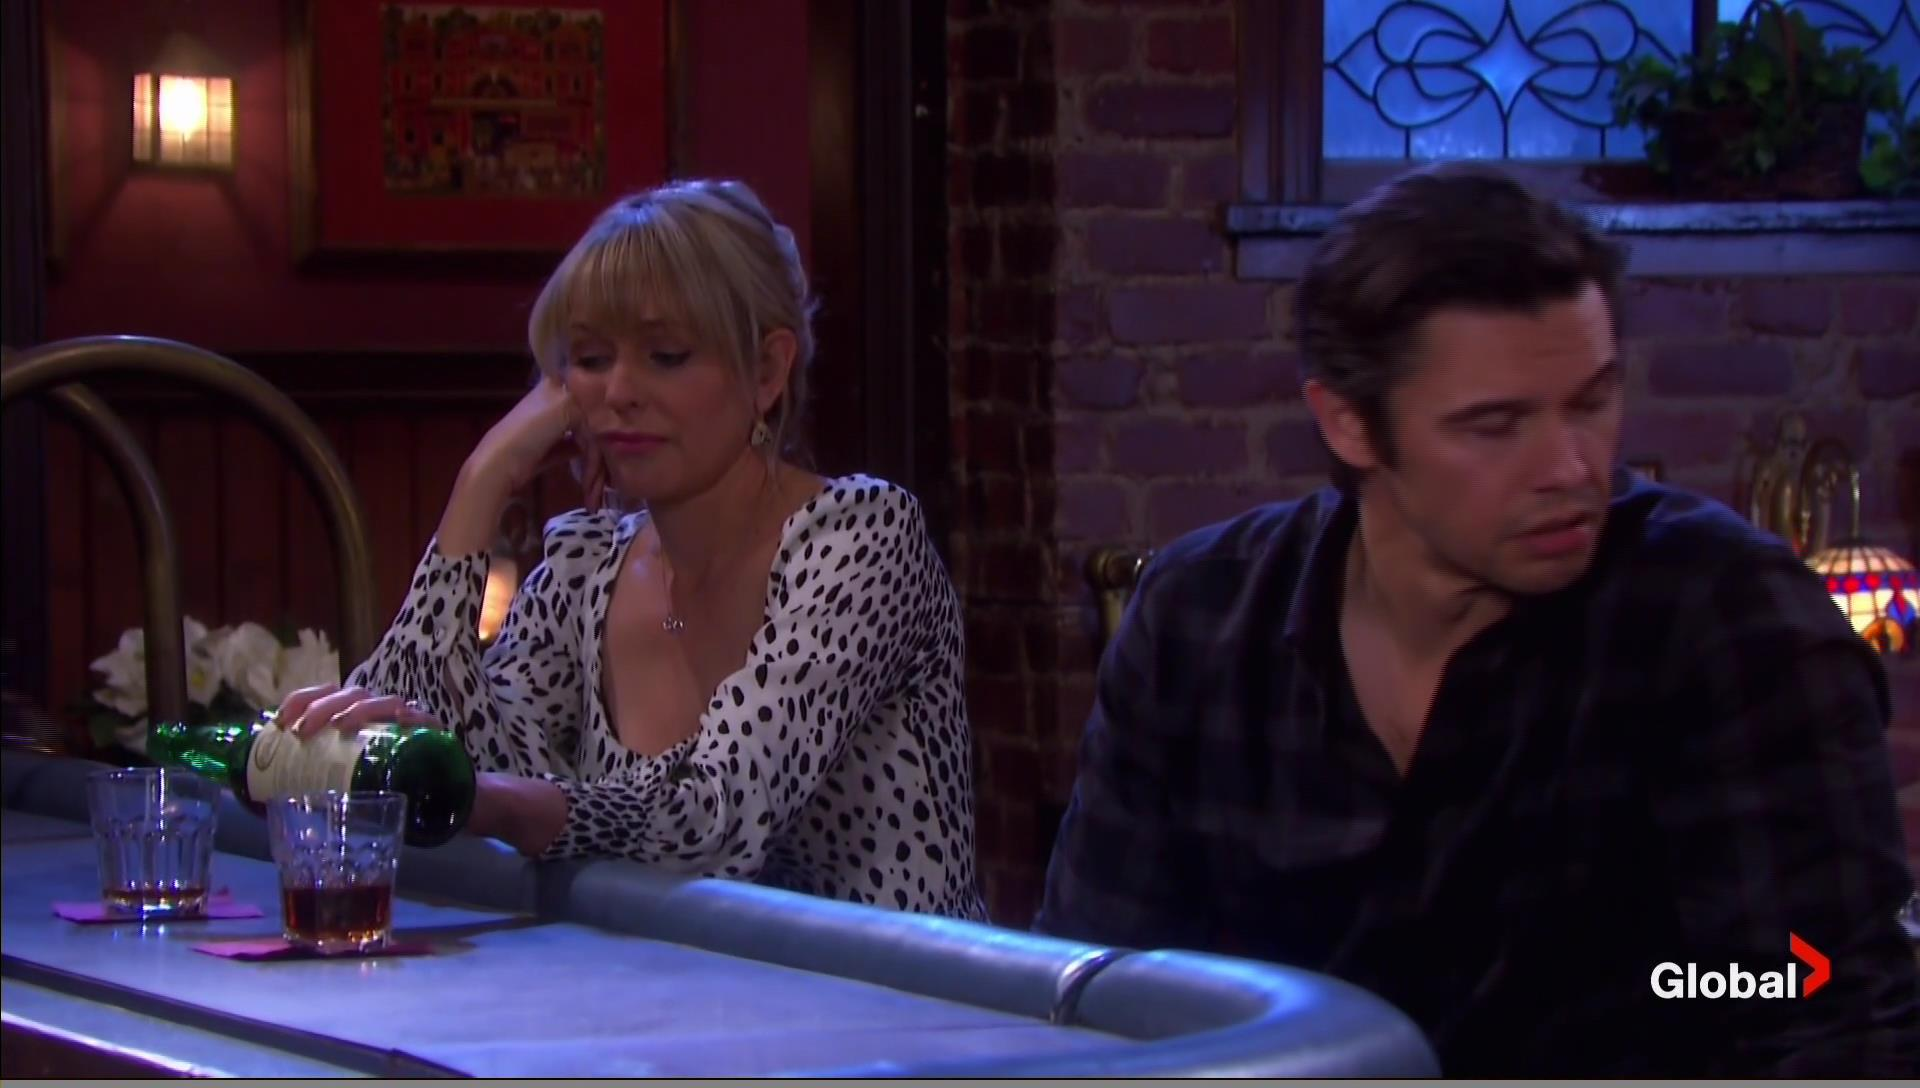 nicole xander drunk together days of our lives